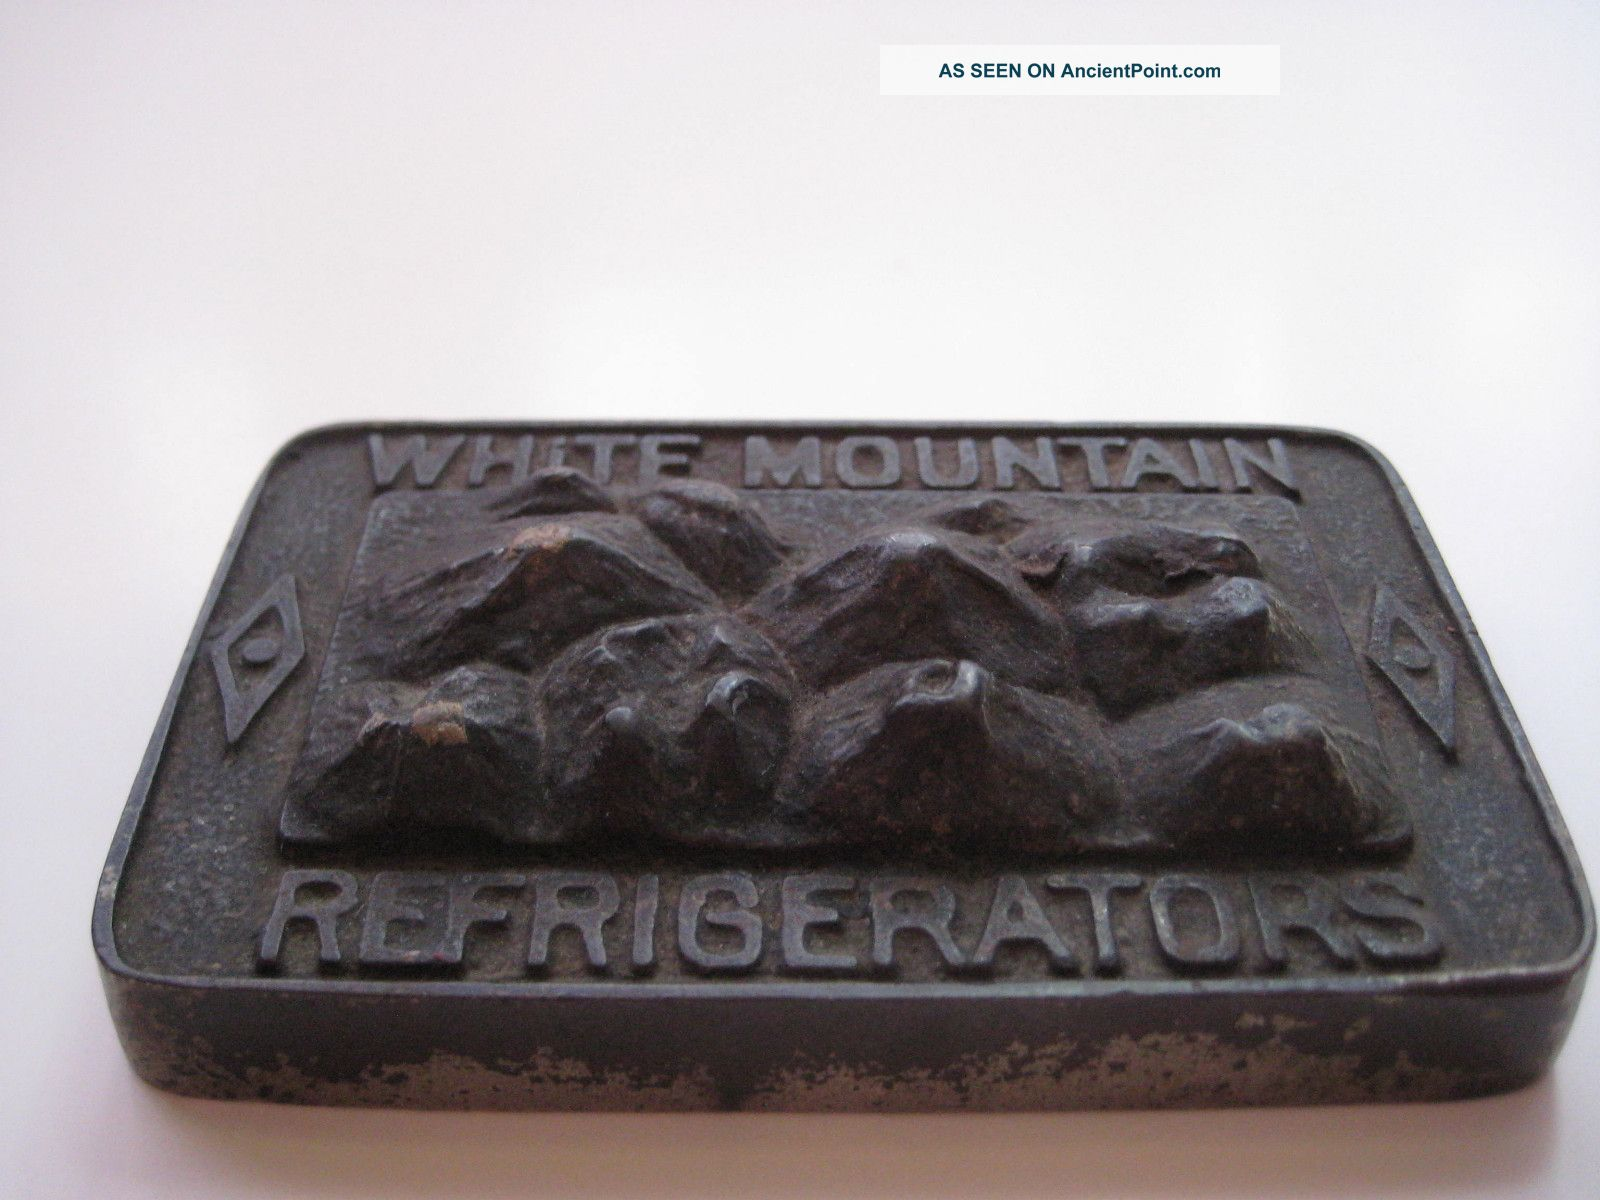 White Mountain Refrigerators Cast Iron Paperweight Maine Manf ' G Co. ,  Nashua,  Nh Ice Boxes photo